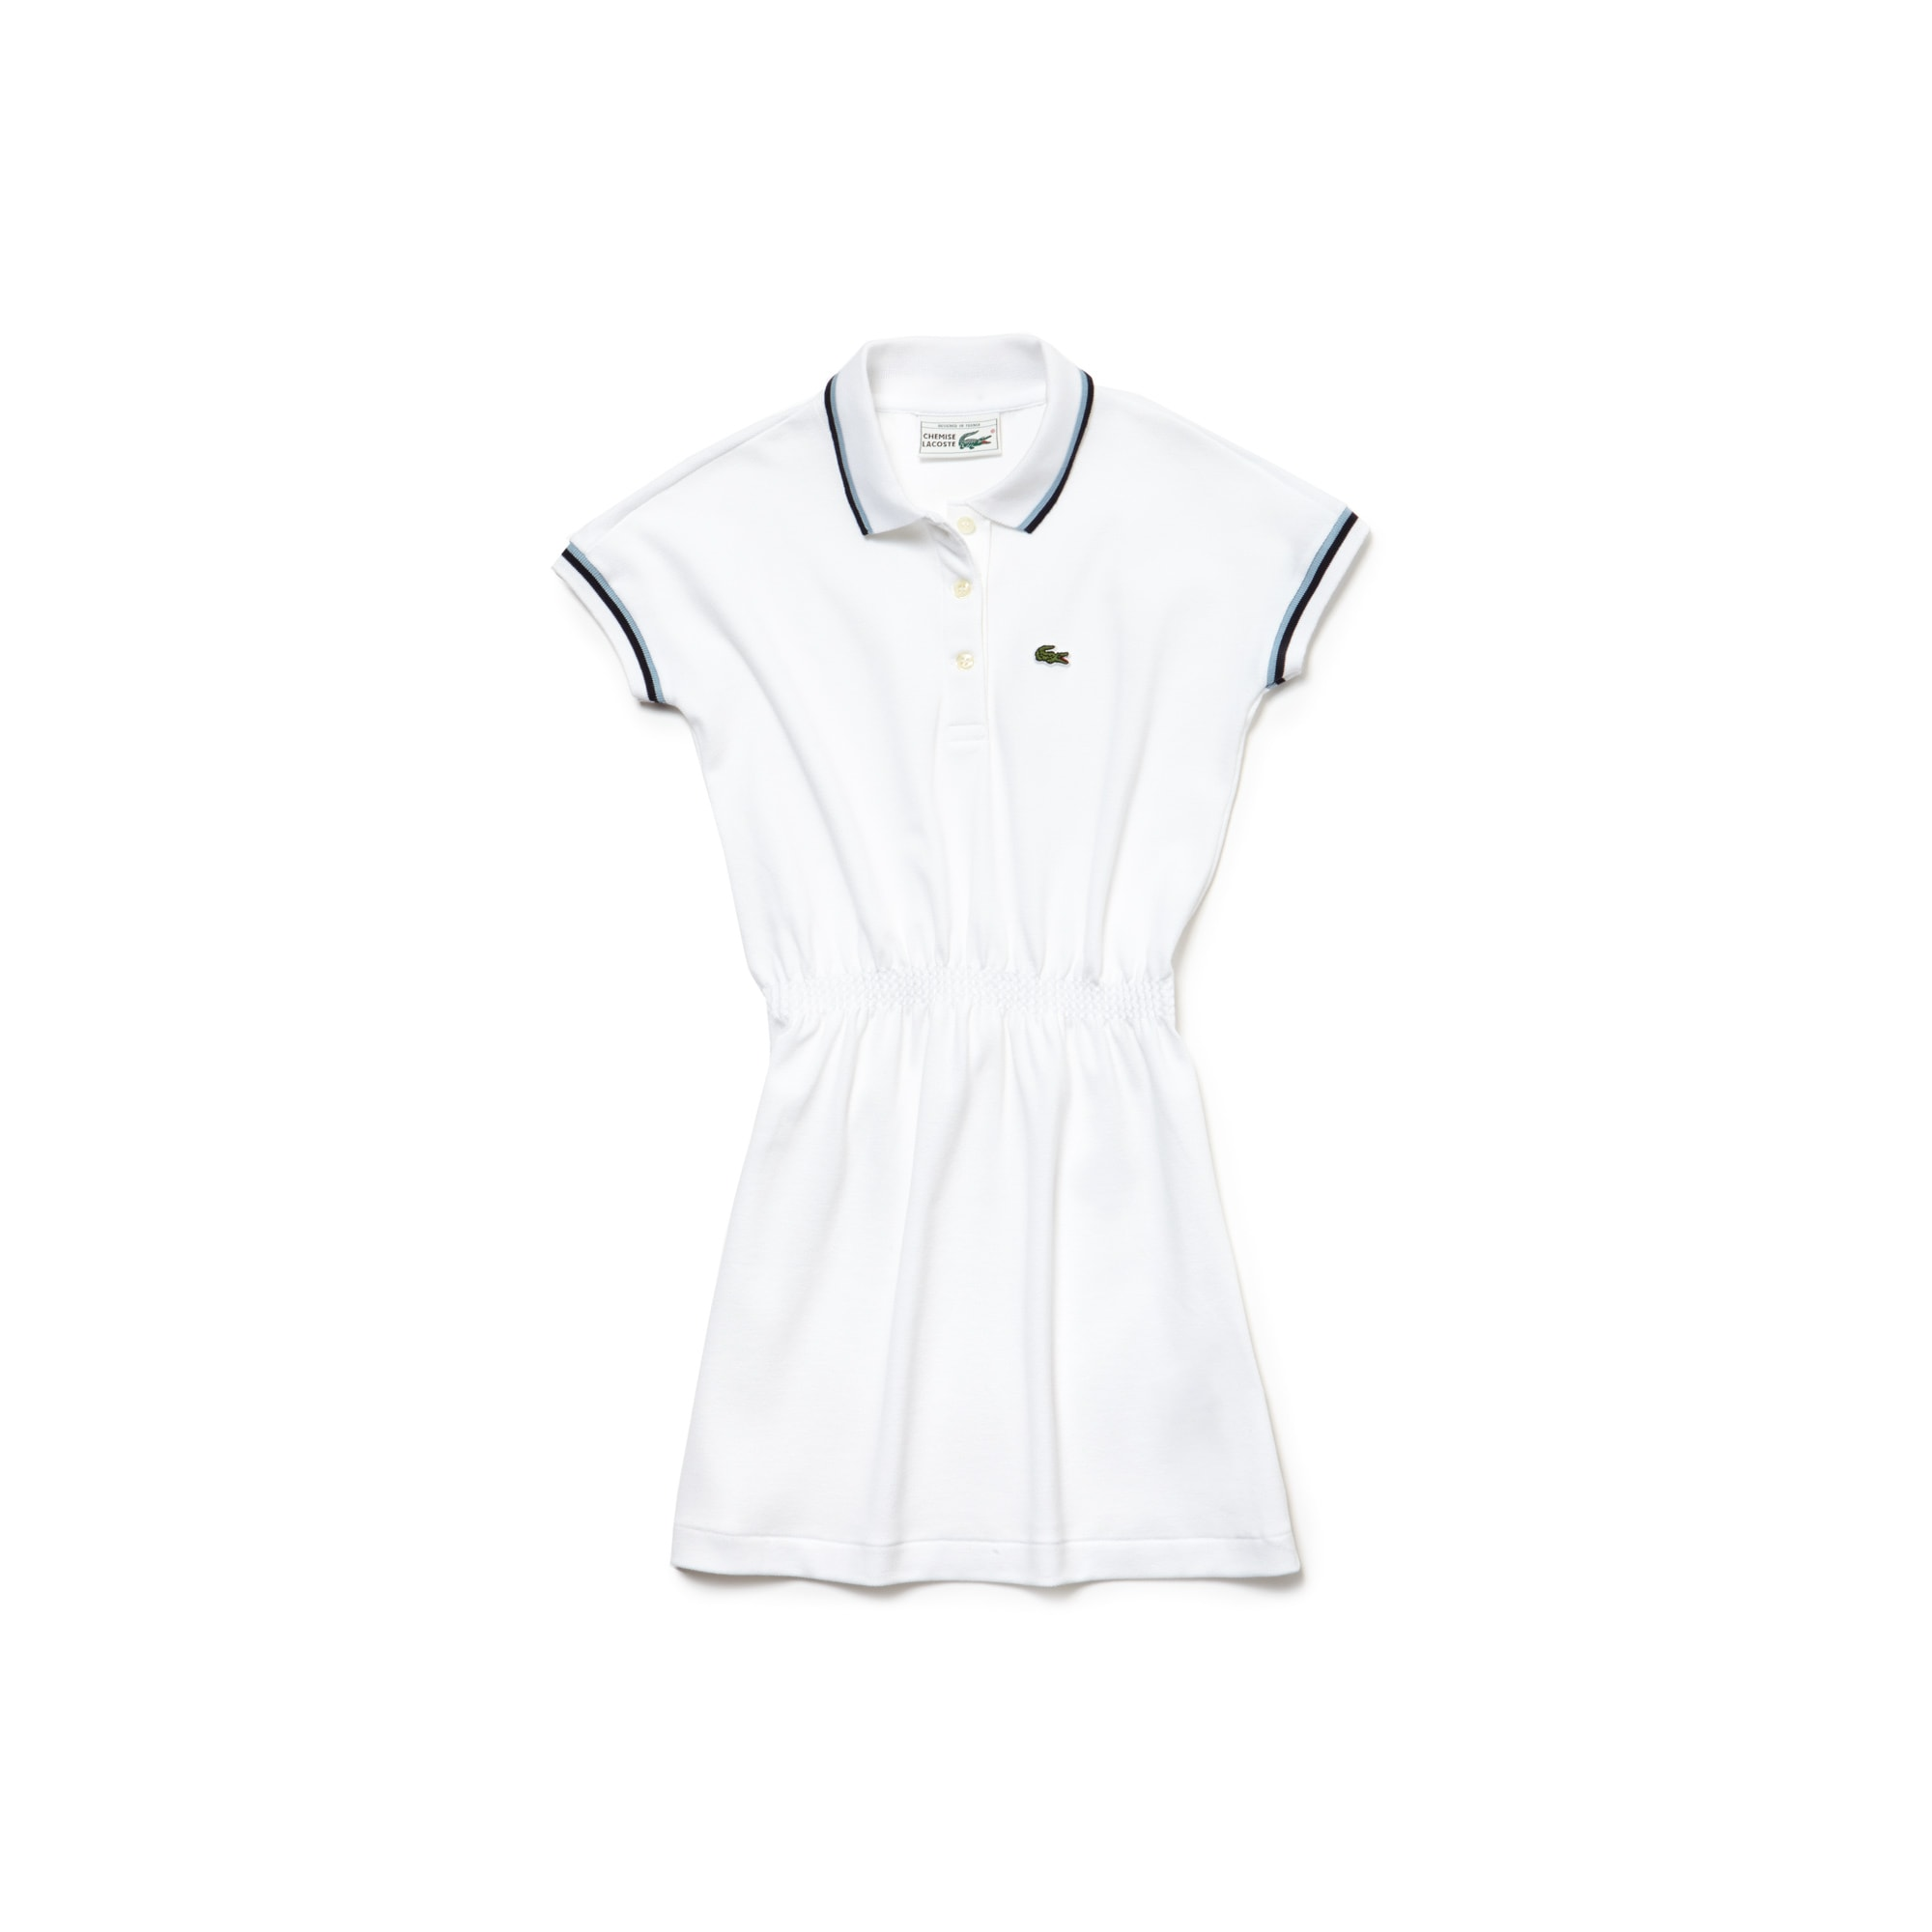 Girls' Lacoste 85th Anniversary Limited Edition Piqué Polo Dress